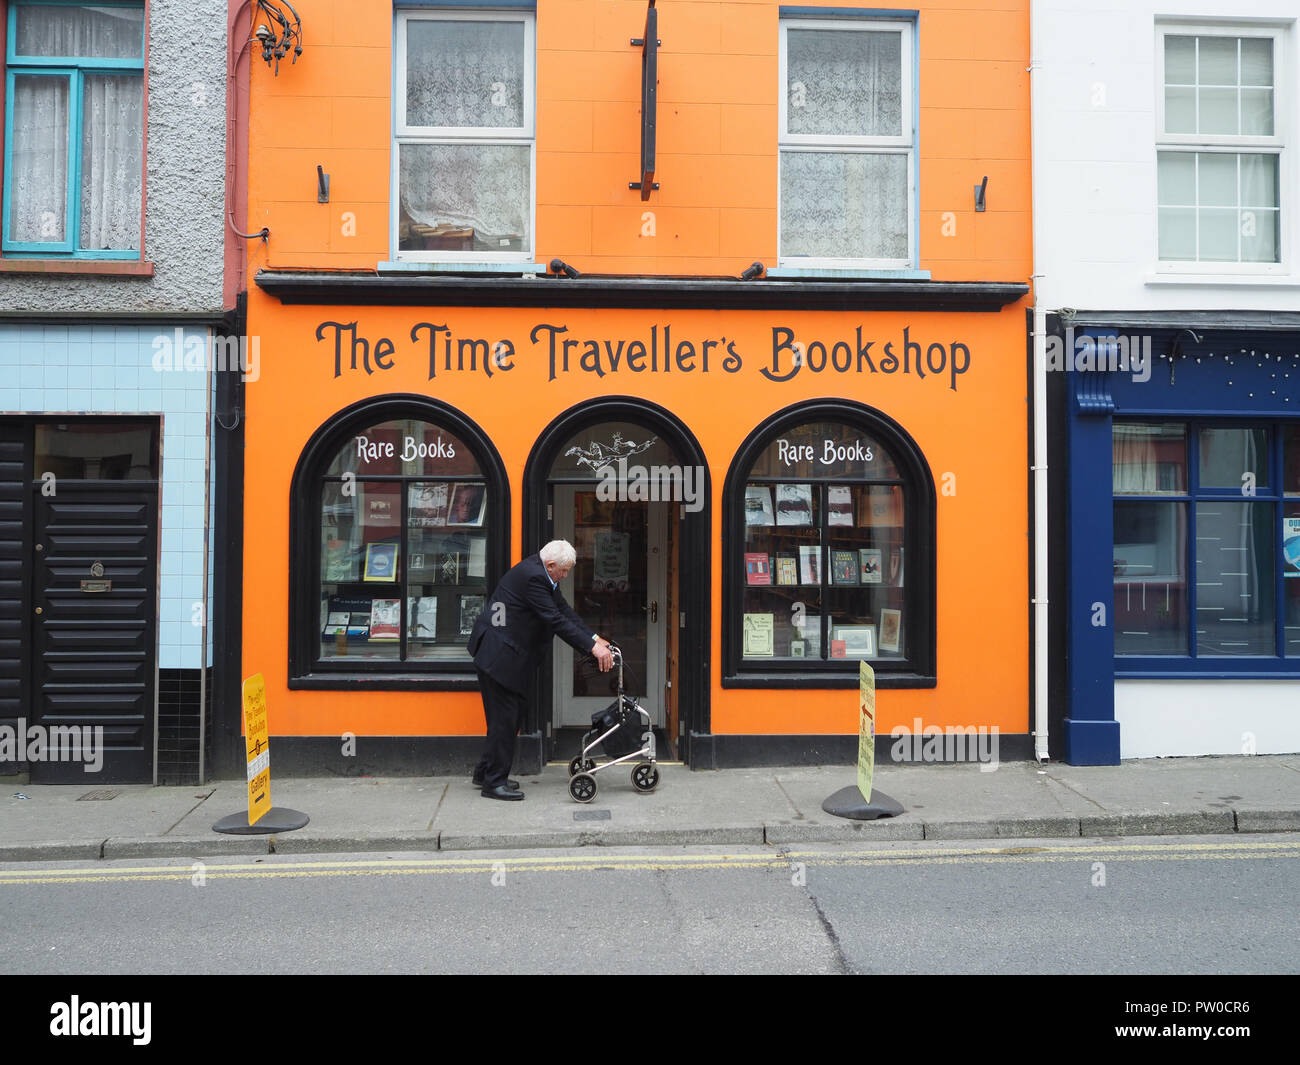 An old man deep in thought on his zimmer frame walks slowly past the Time Traveller bookshop in a little town on the west coast of Ireland. If only. - Stock Image